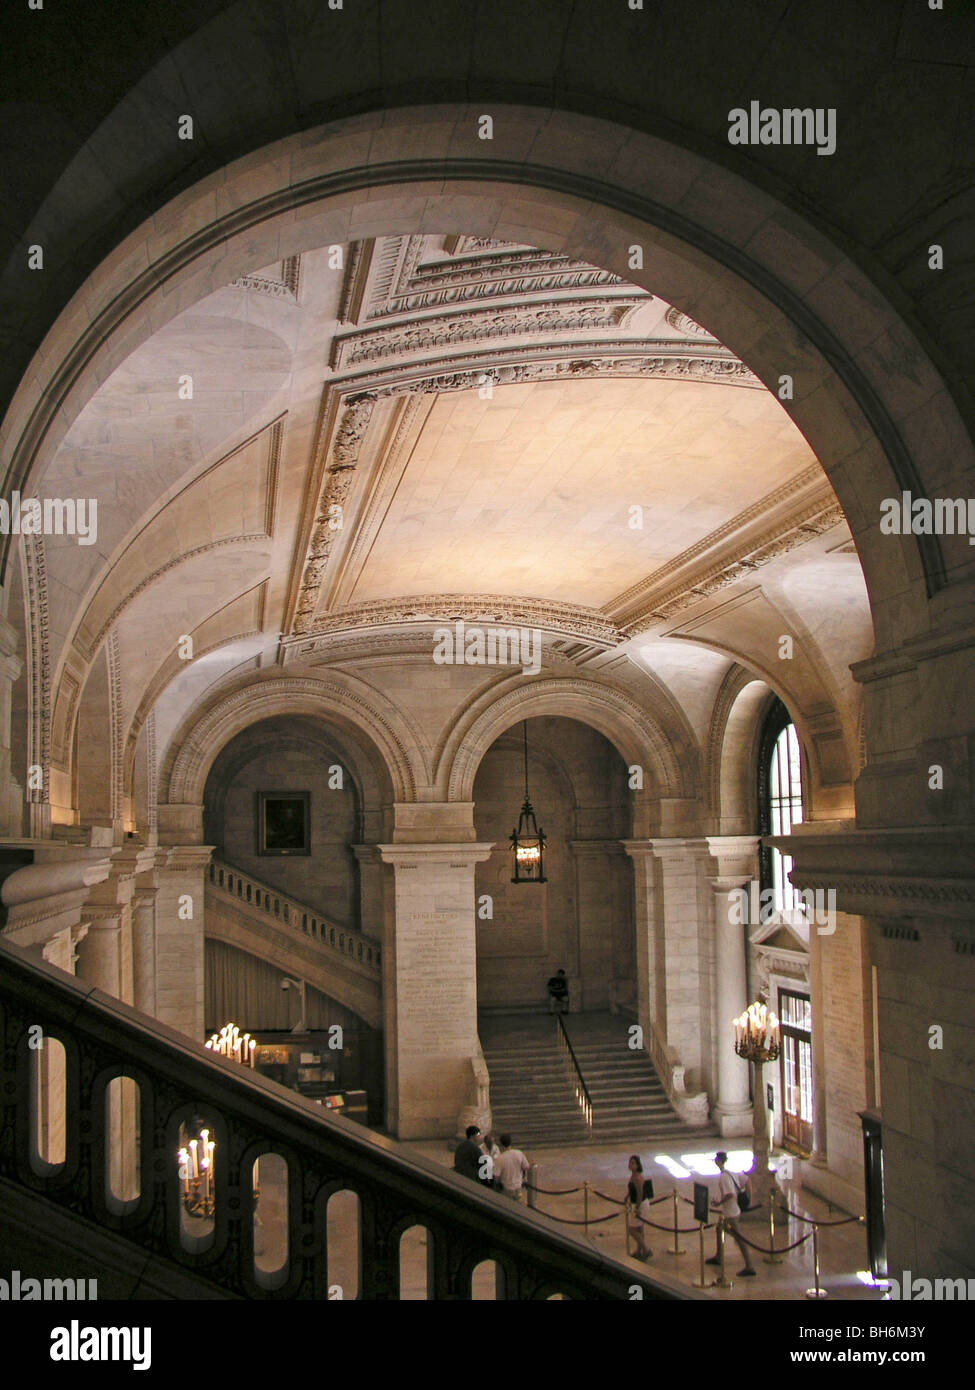 New York Public Library interior largest marble building in us in 1911landmark 5th avenue staircase midtown Manhattan Stock Photo